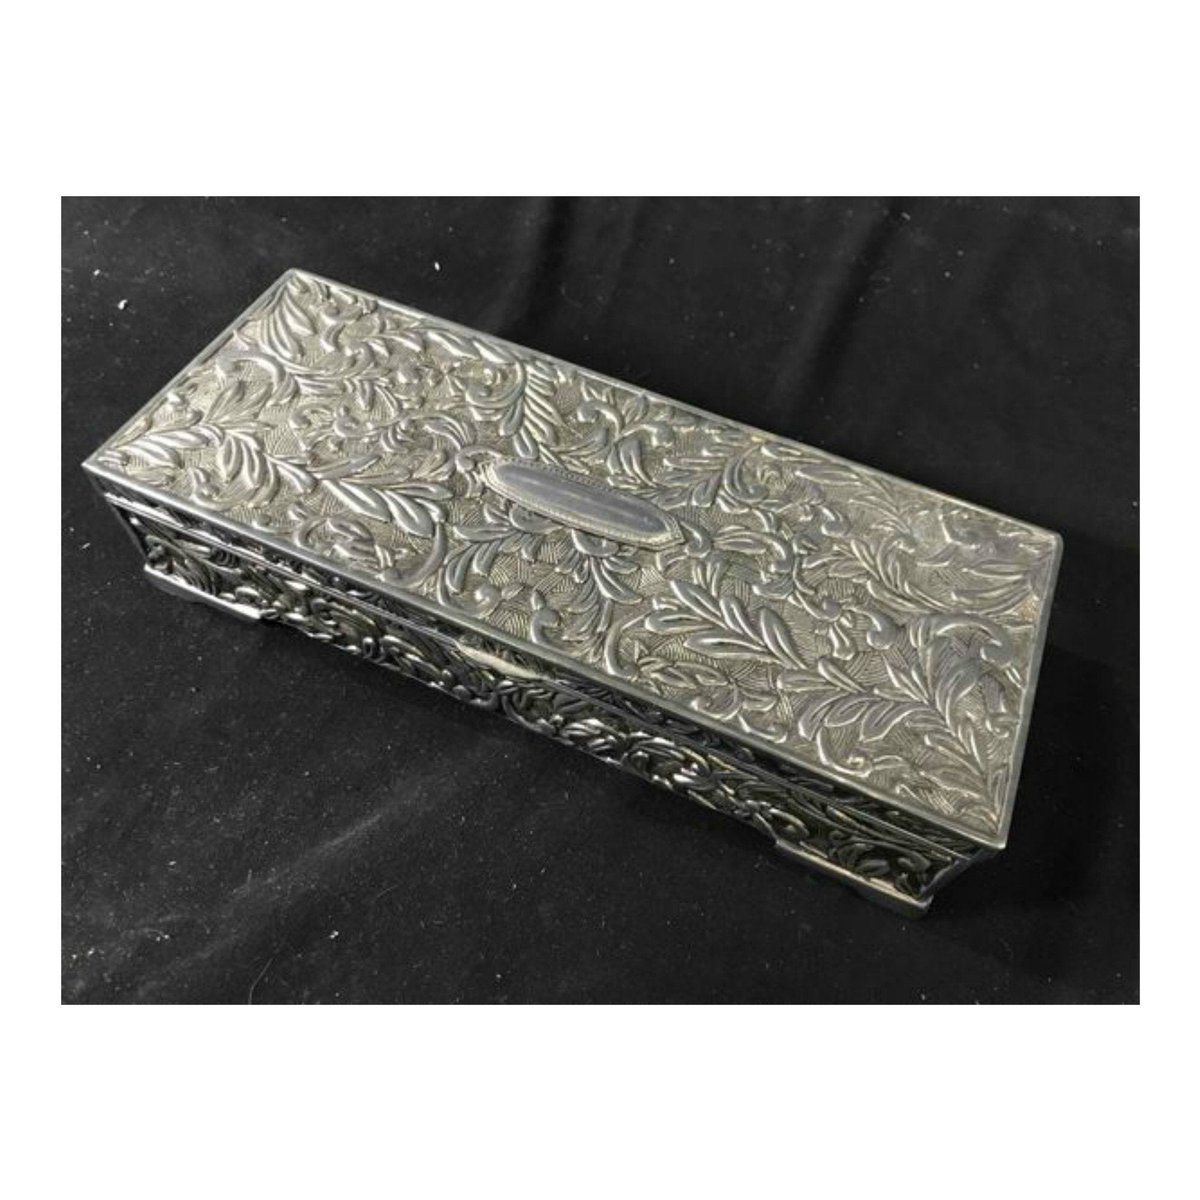 Vintage Godinger Silver Plate Jewelry Casket https://t.co/wIoxWuRz3N #silver #mothersday #rectangle #silverdresserbox #ornatesilverbox #trinketbox #jewelrybox #gotvintage #junkyardblonde https://t.co/FLLLLQOAc1